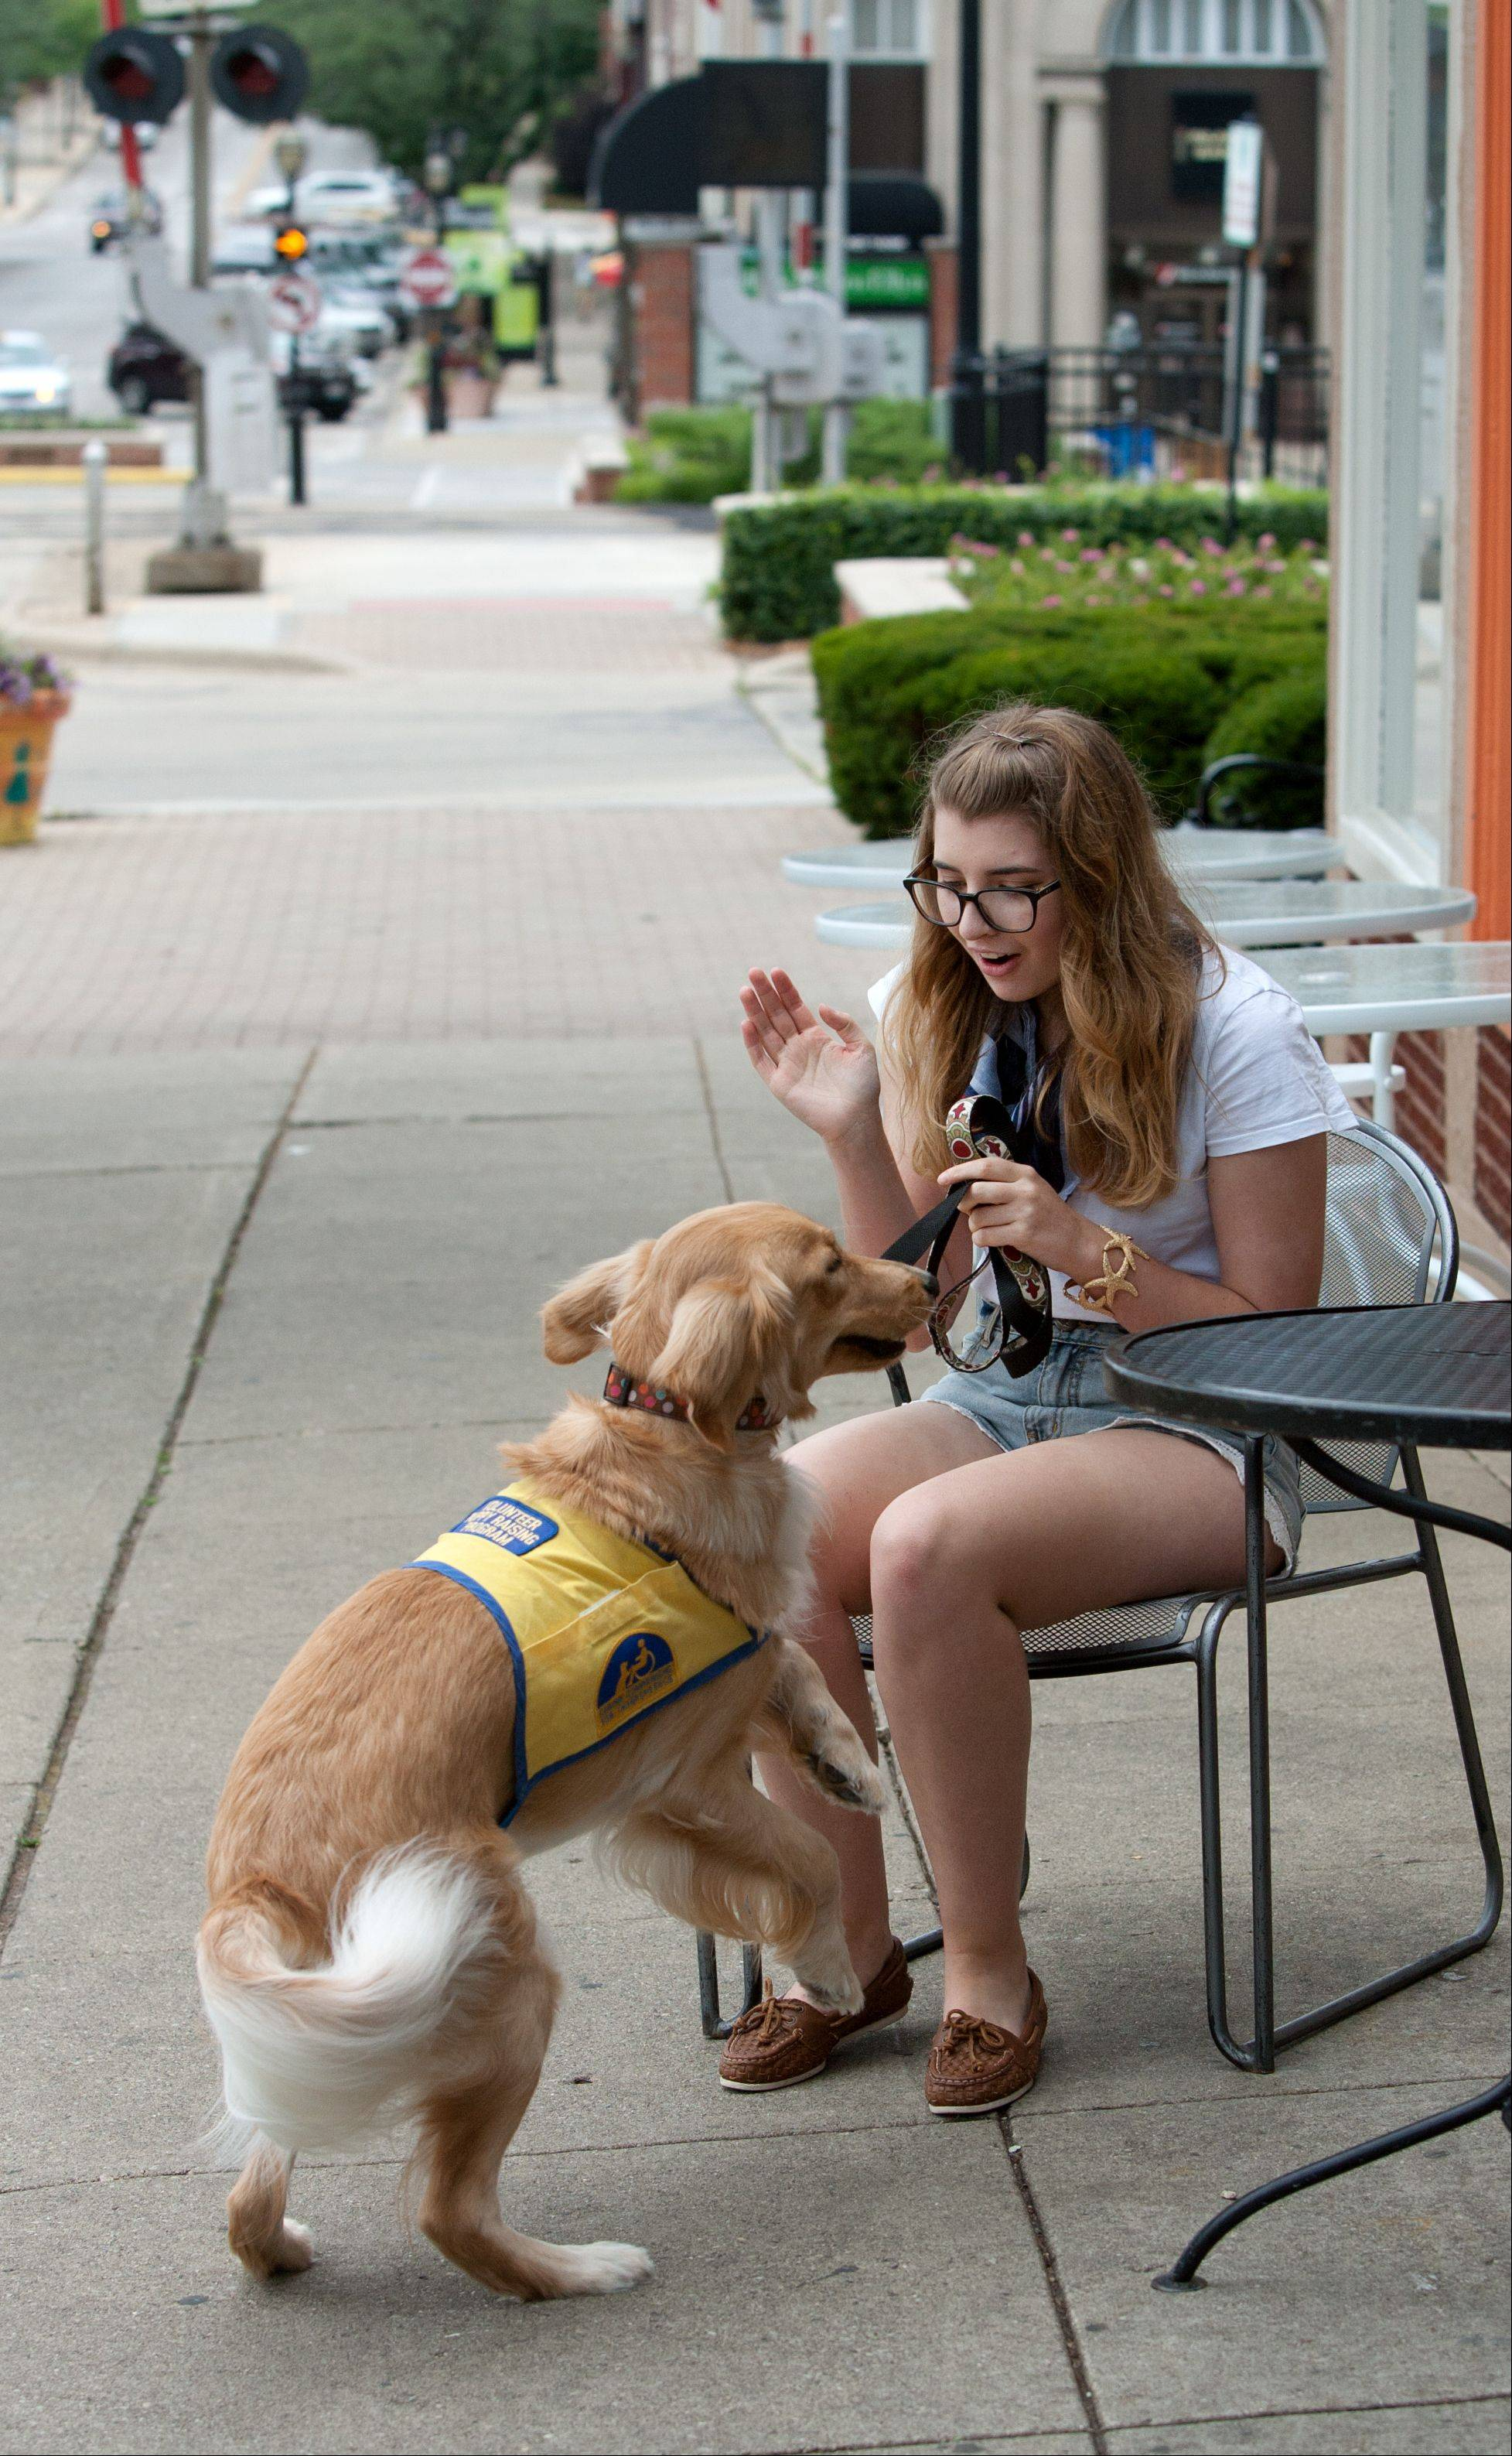 Morgan Riley takes Friday into downtown Glen Ellyn to help the golden retriever learn good manners in public. In restaurants, the dogs learn to lie quietly under the table so people often do not even know they are there.